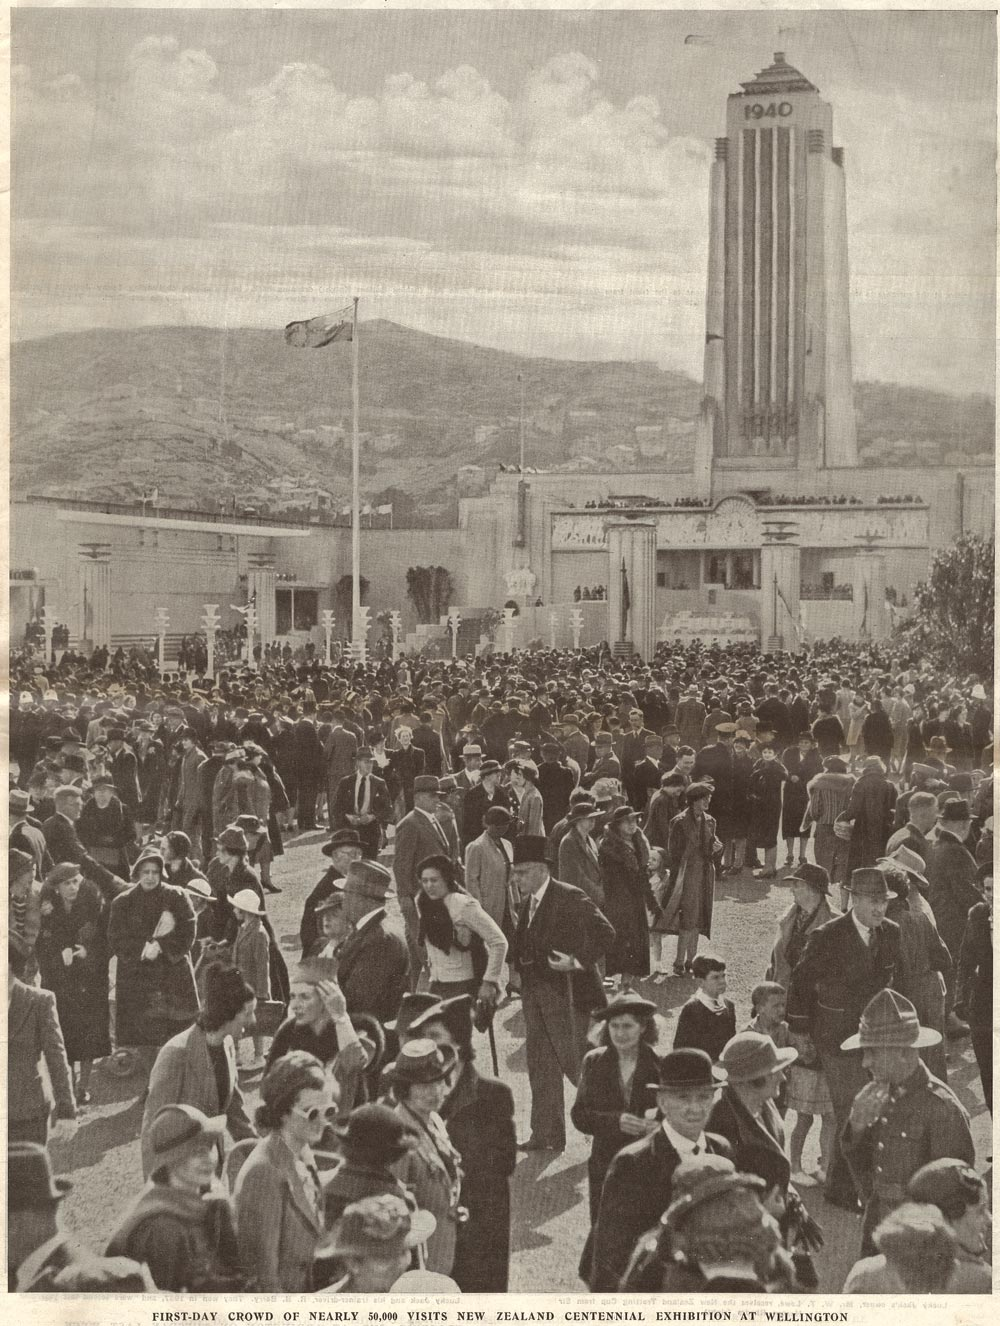 FIRST-DAY CROWD OF NEARLY 50,000 VISITS NEW ZEALAND CENTENNIAL EXHIBITION AT WELLINGTON.